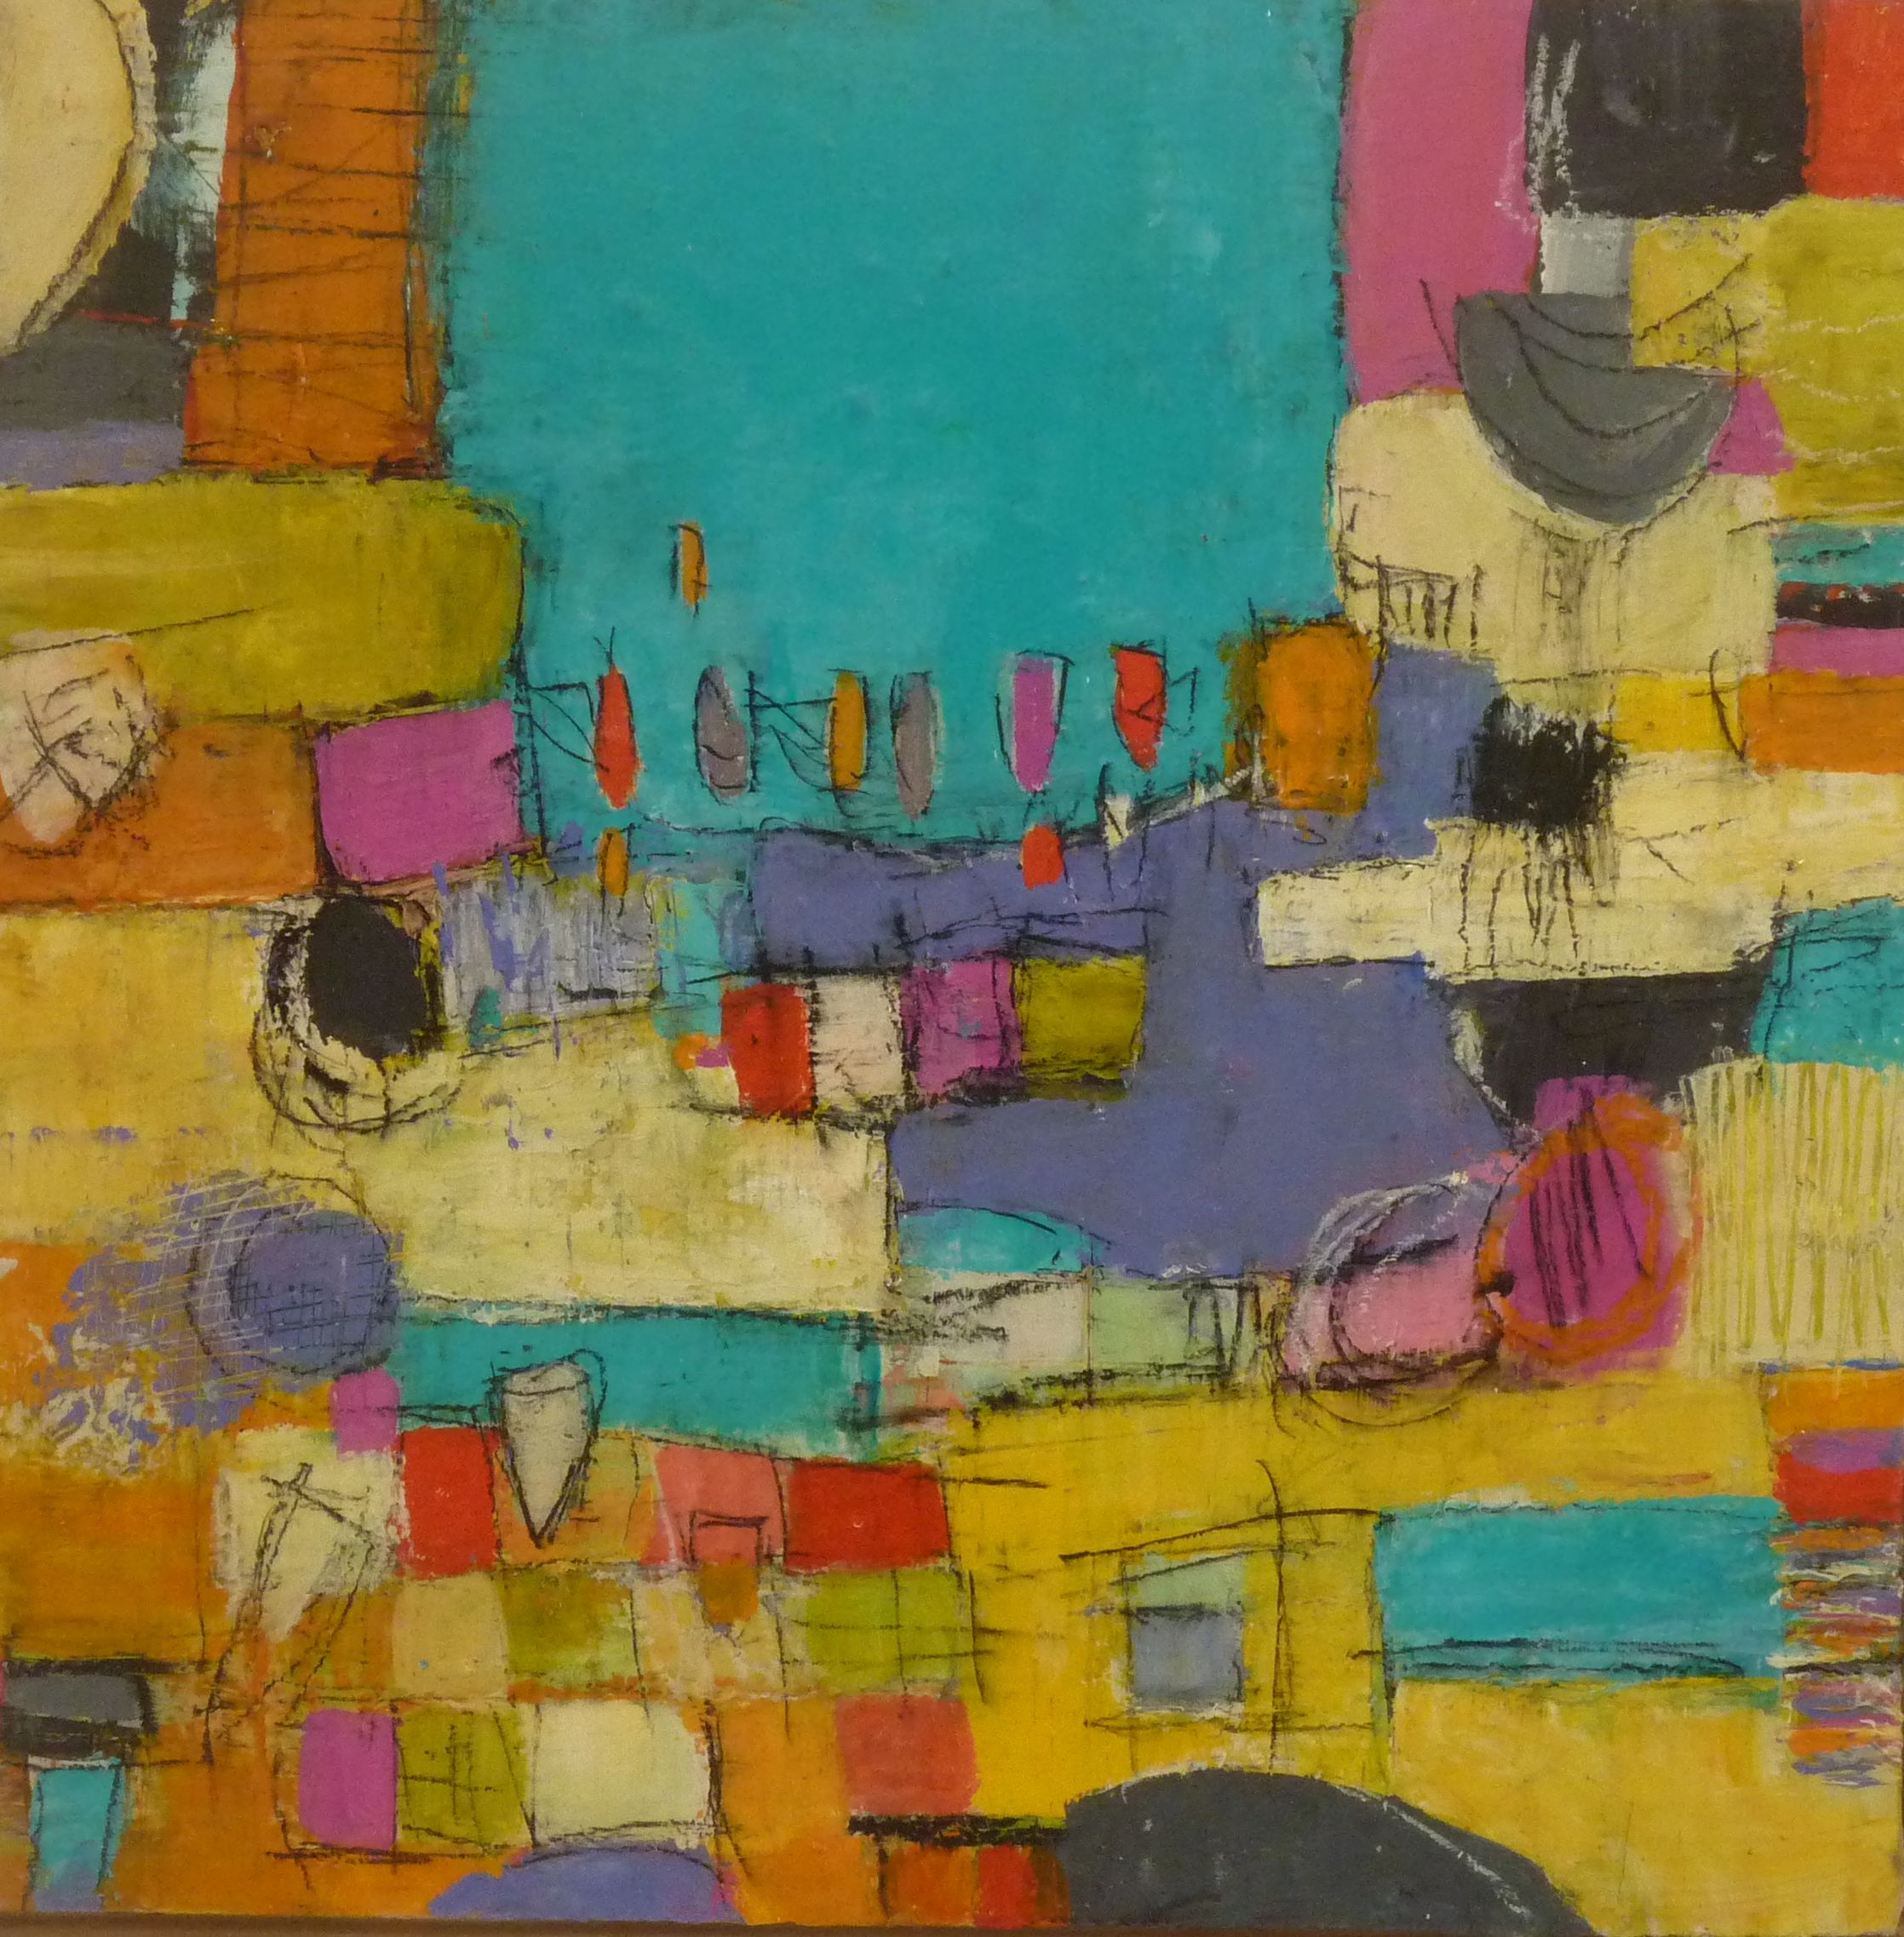 Boat Harbour 30x30 cm Acrylic/Mixed Media on Canvas $495